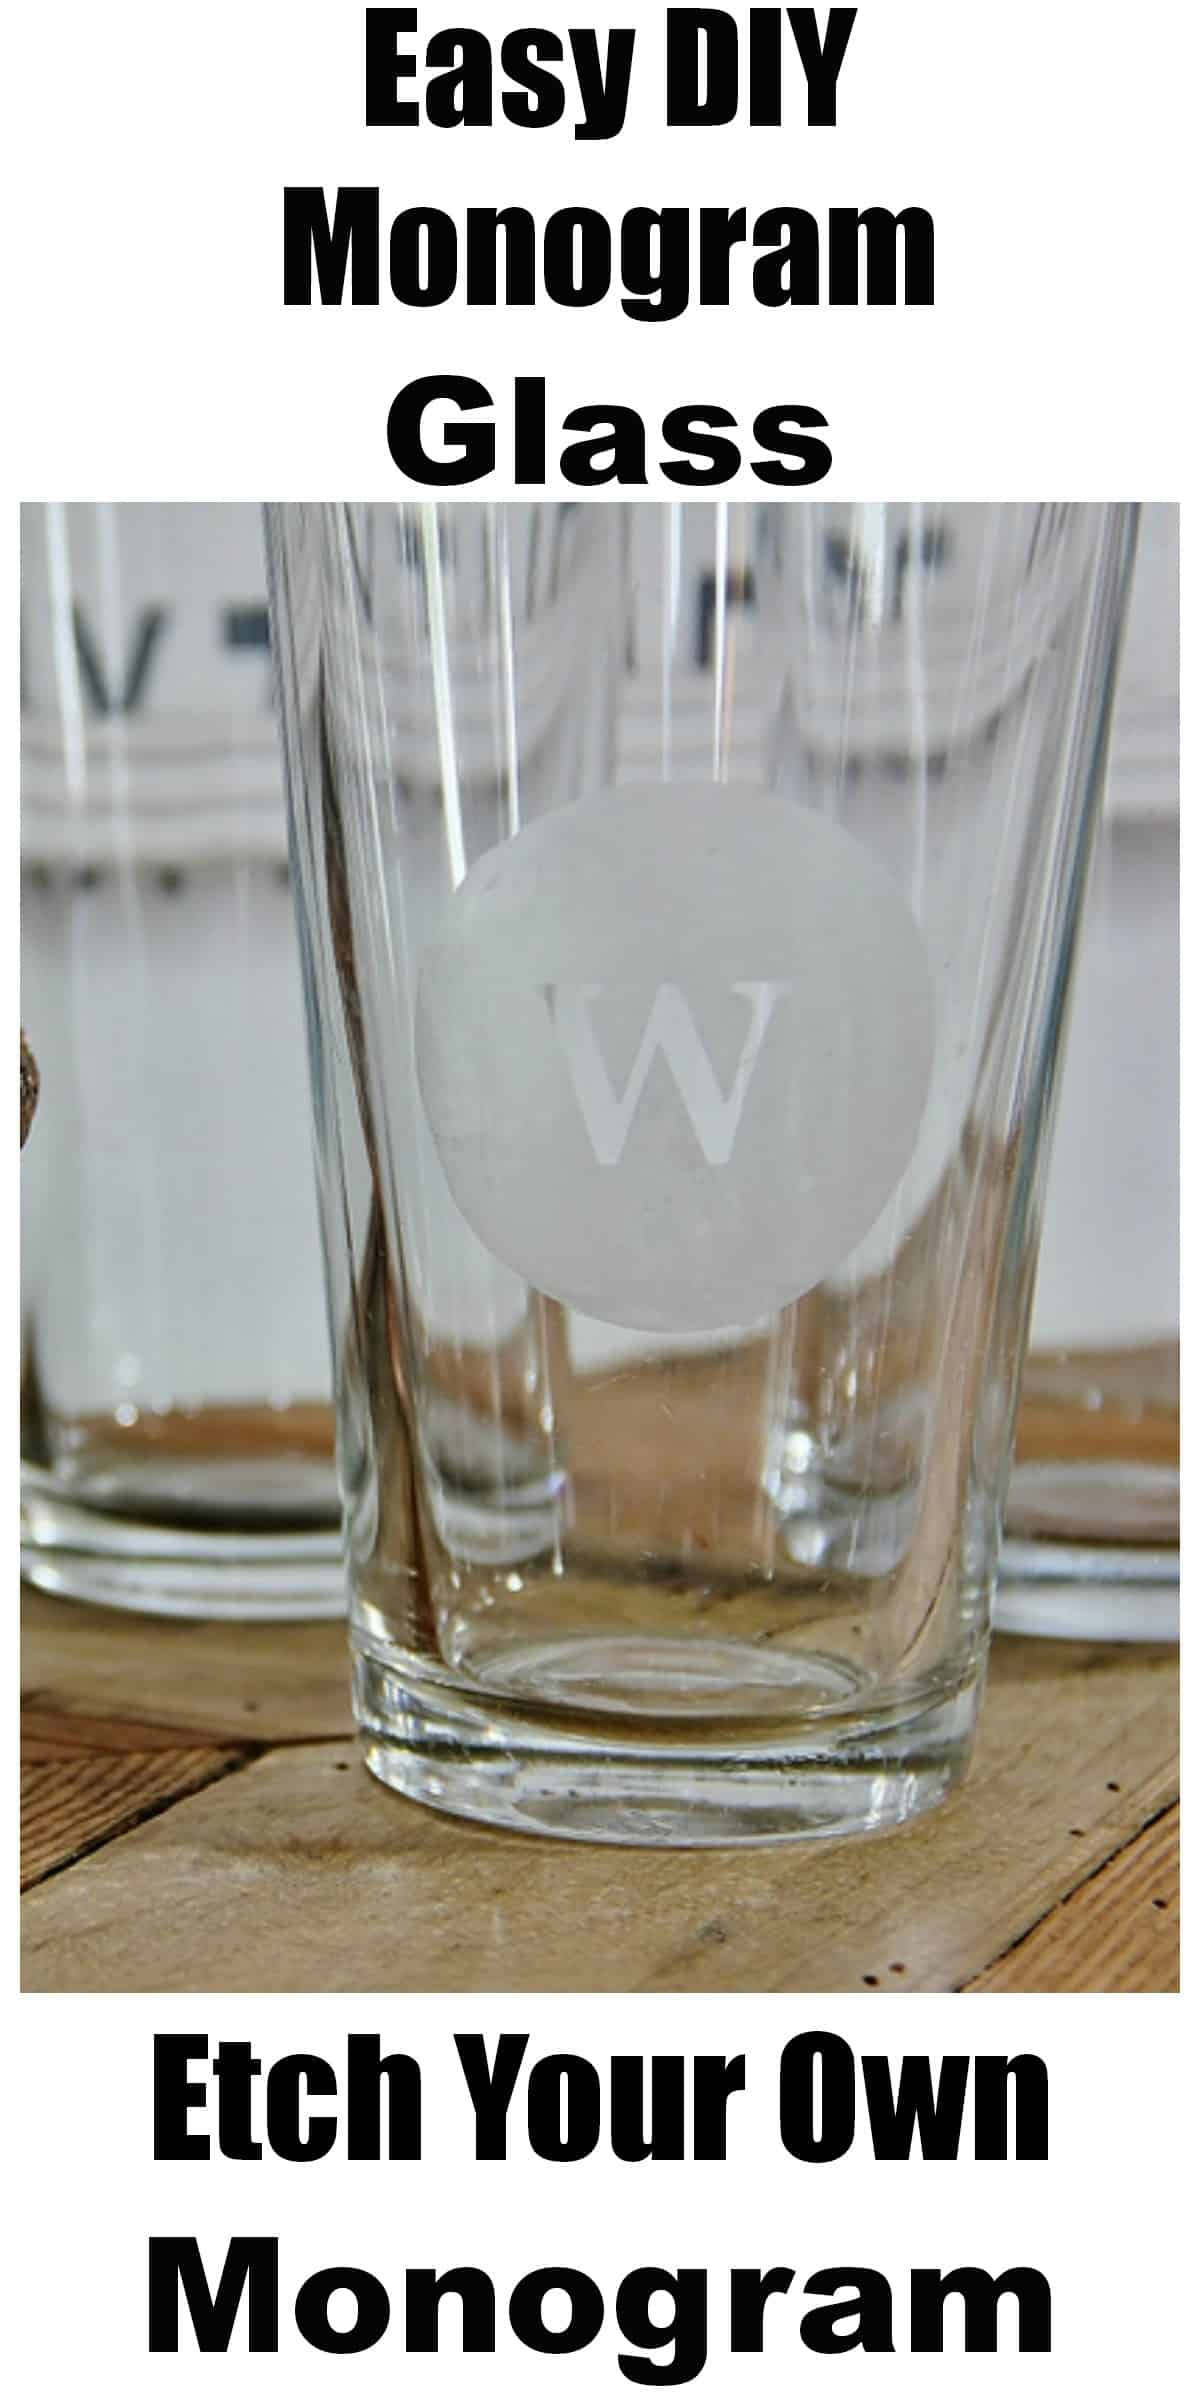 Etch your own monogram glasses